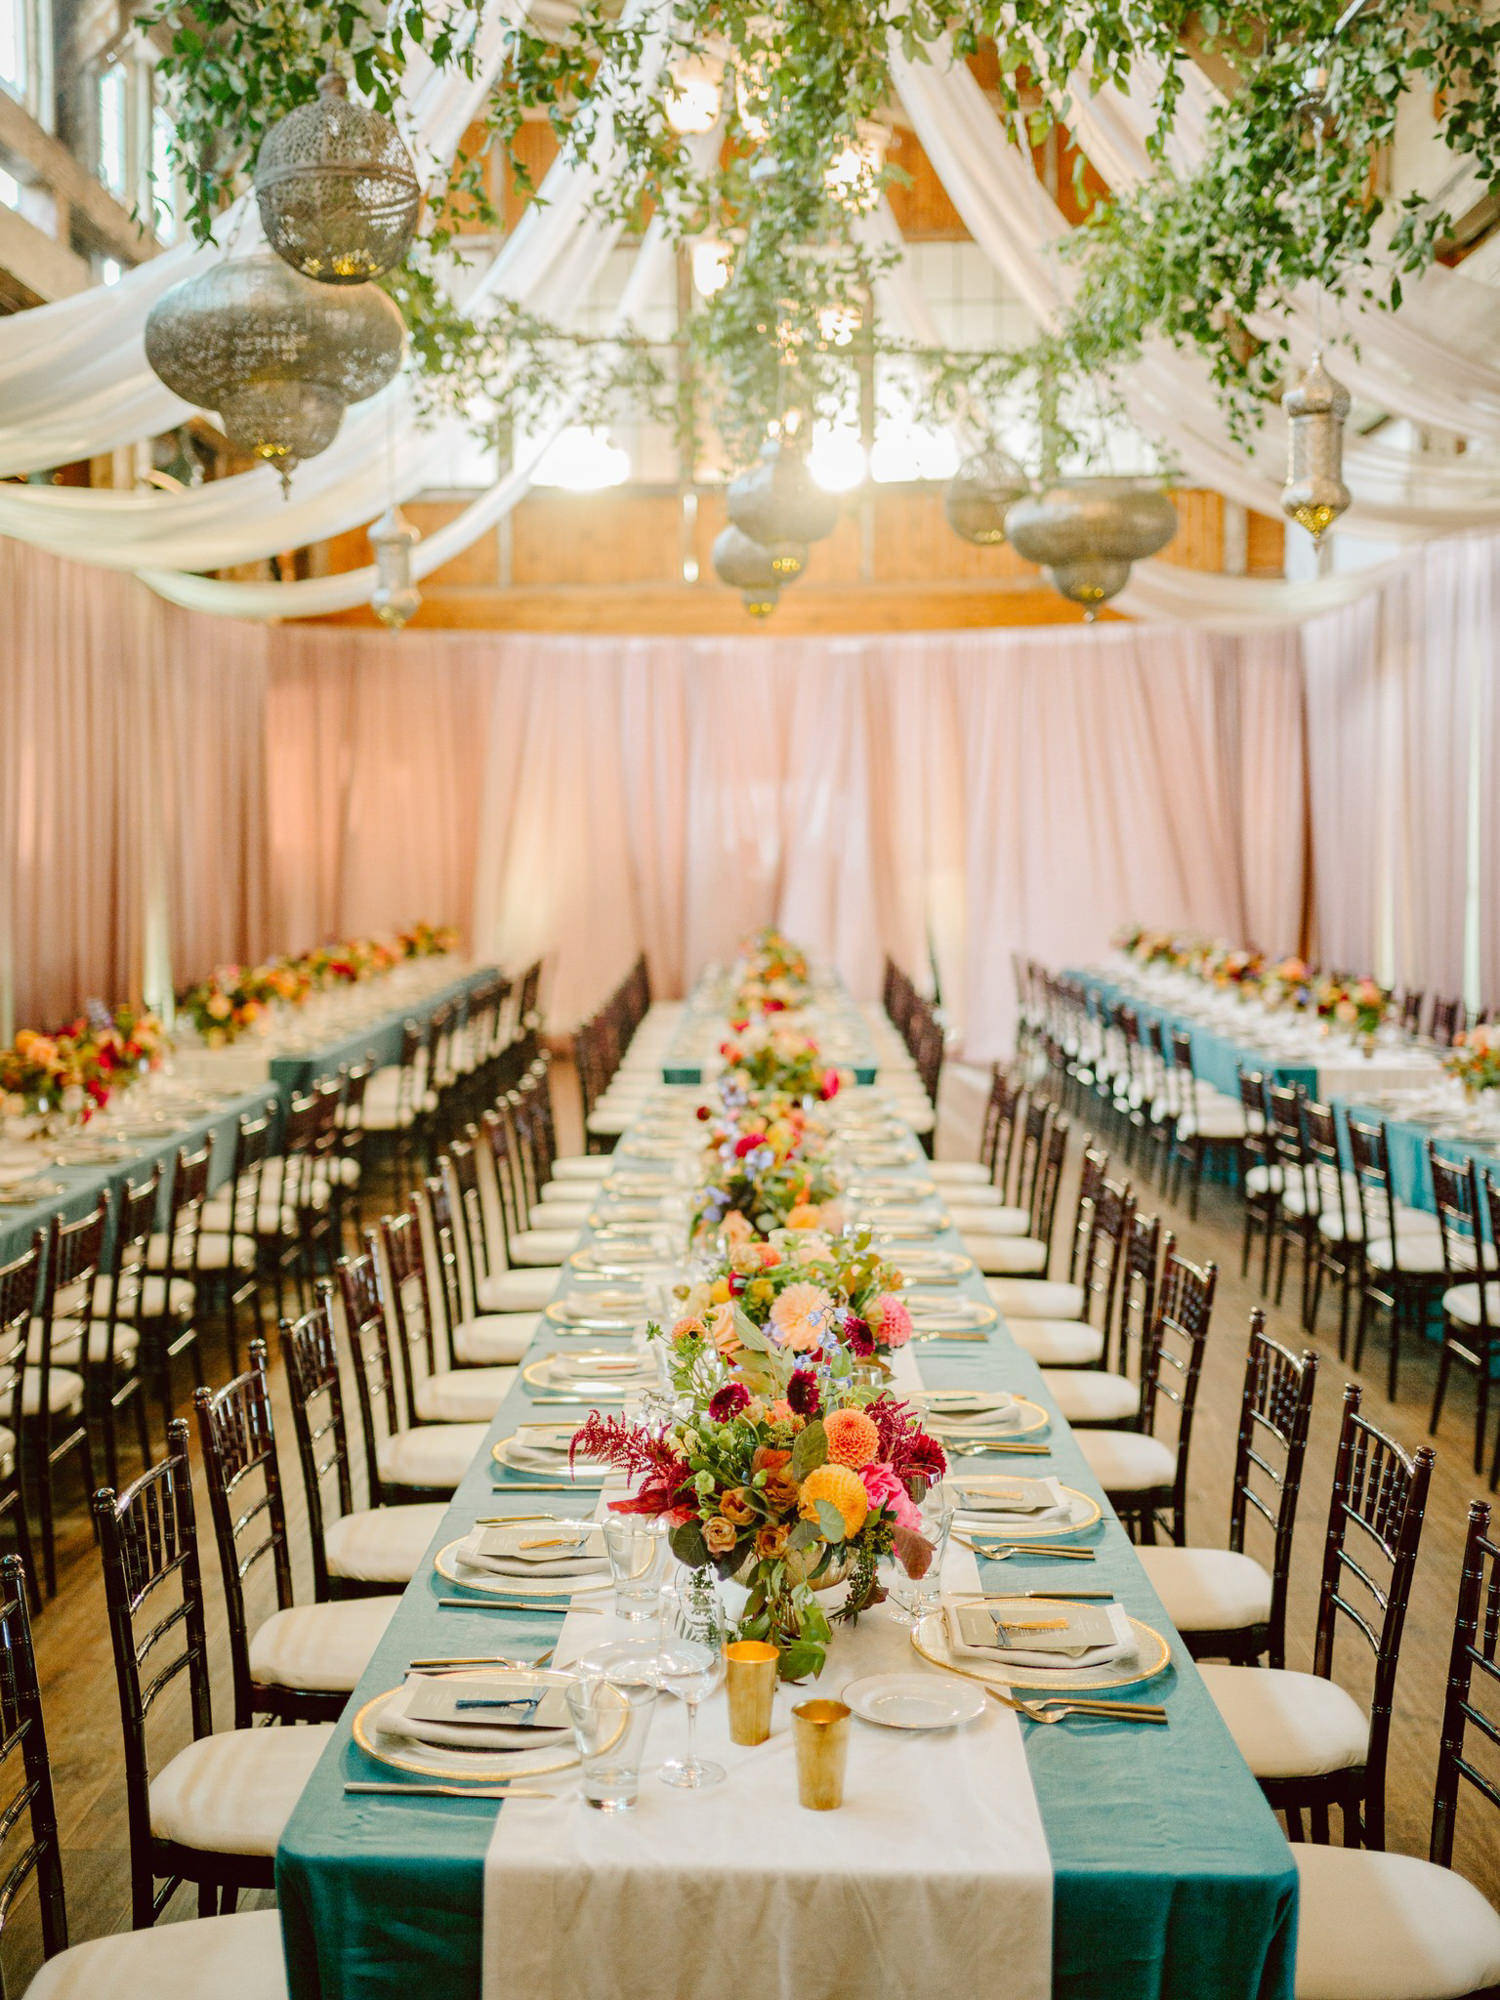 Reception decor with light blue tablecoths and dahlia bouquets - Photo by Benj Haisch